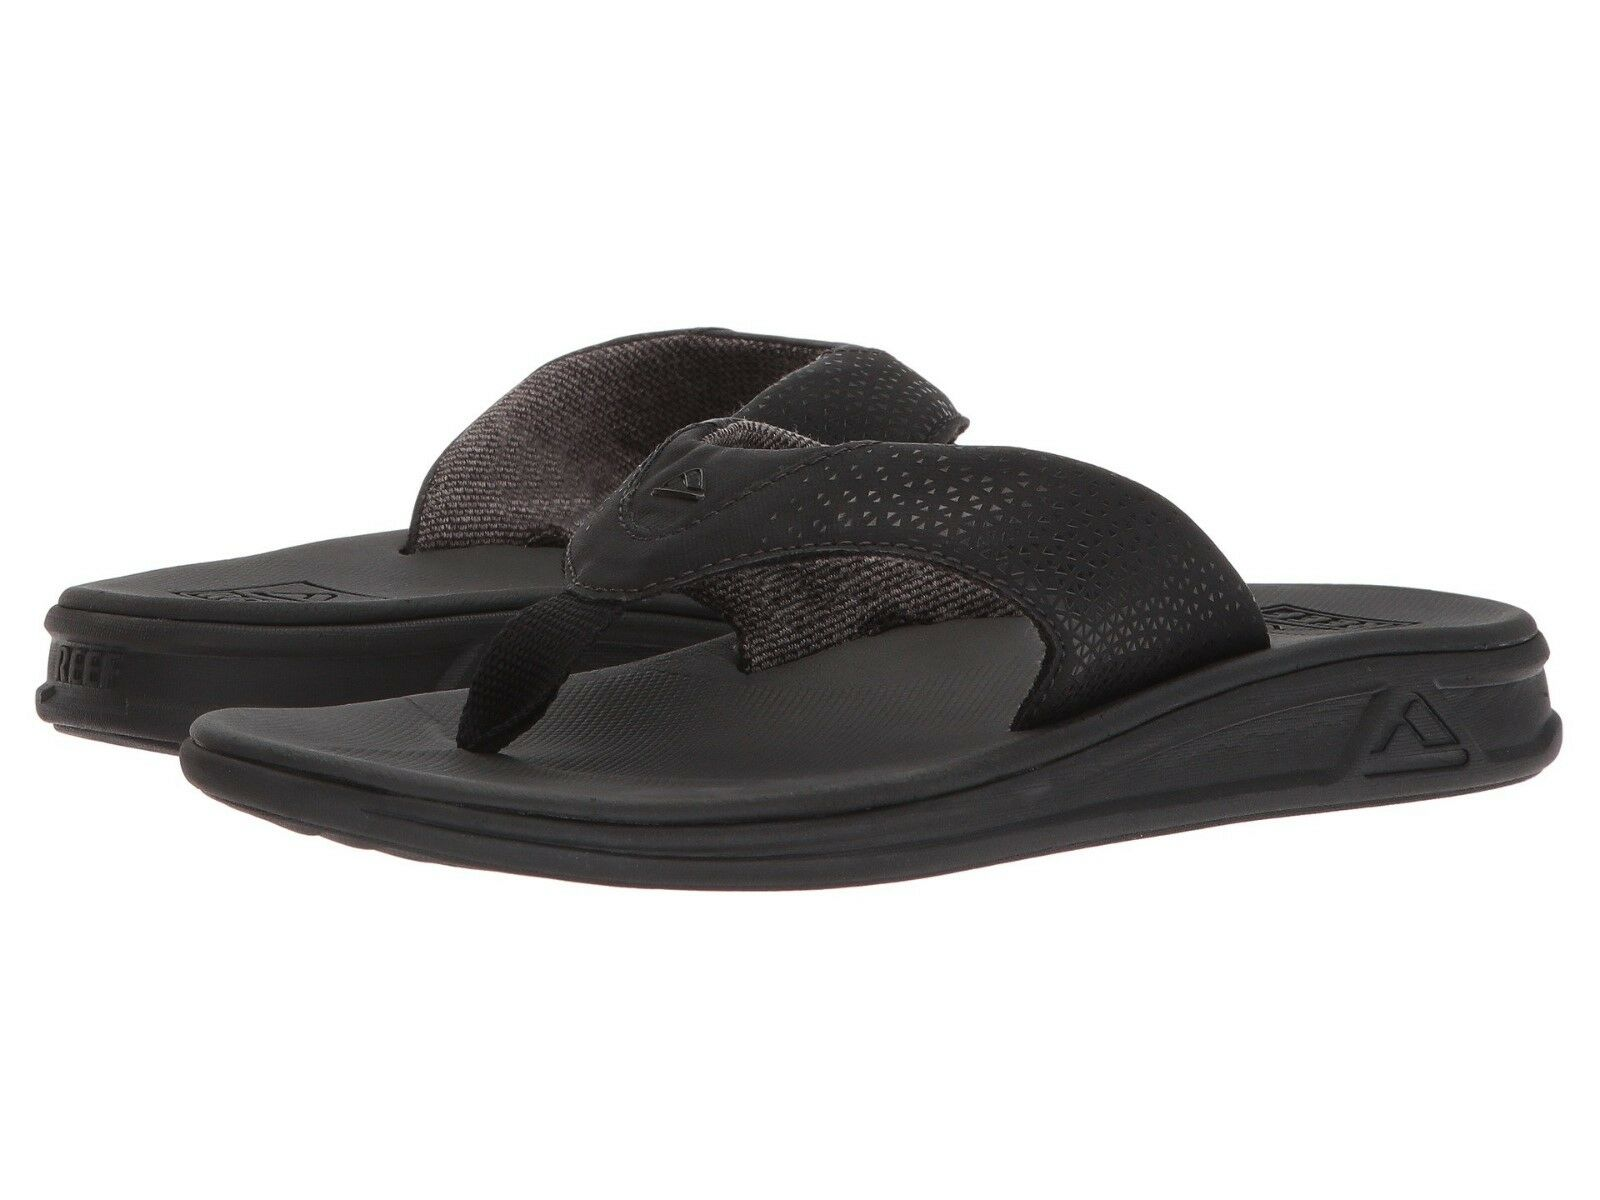 3d7df7045955 NEW MEN REEF ROVER TECHNOLOGY COMFORT SANDAL FLIP FLOP ALL ALL ALL BLACK  ORIG RF002295 003eb4